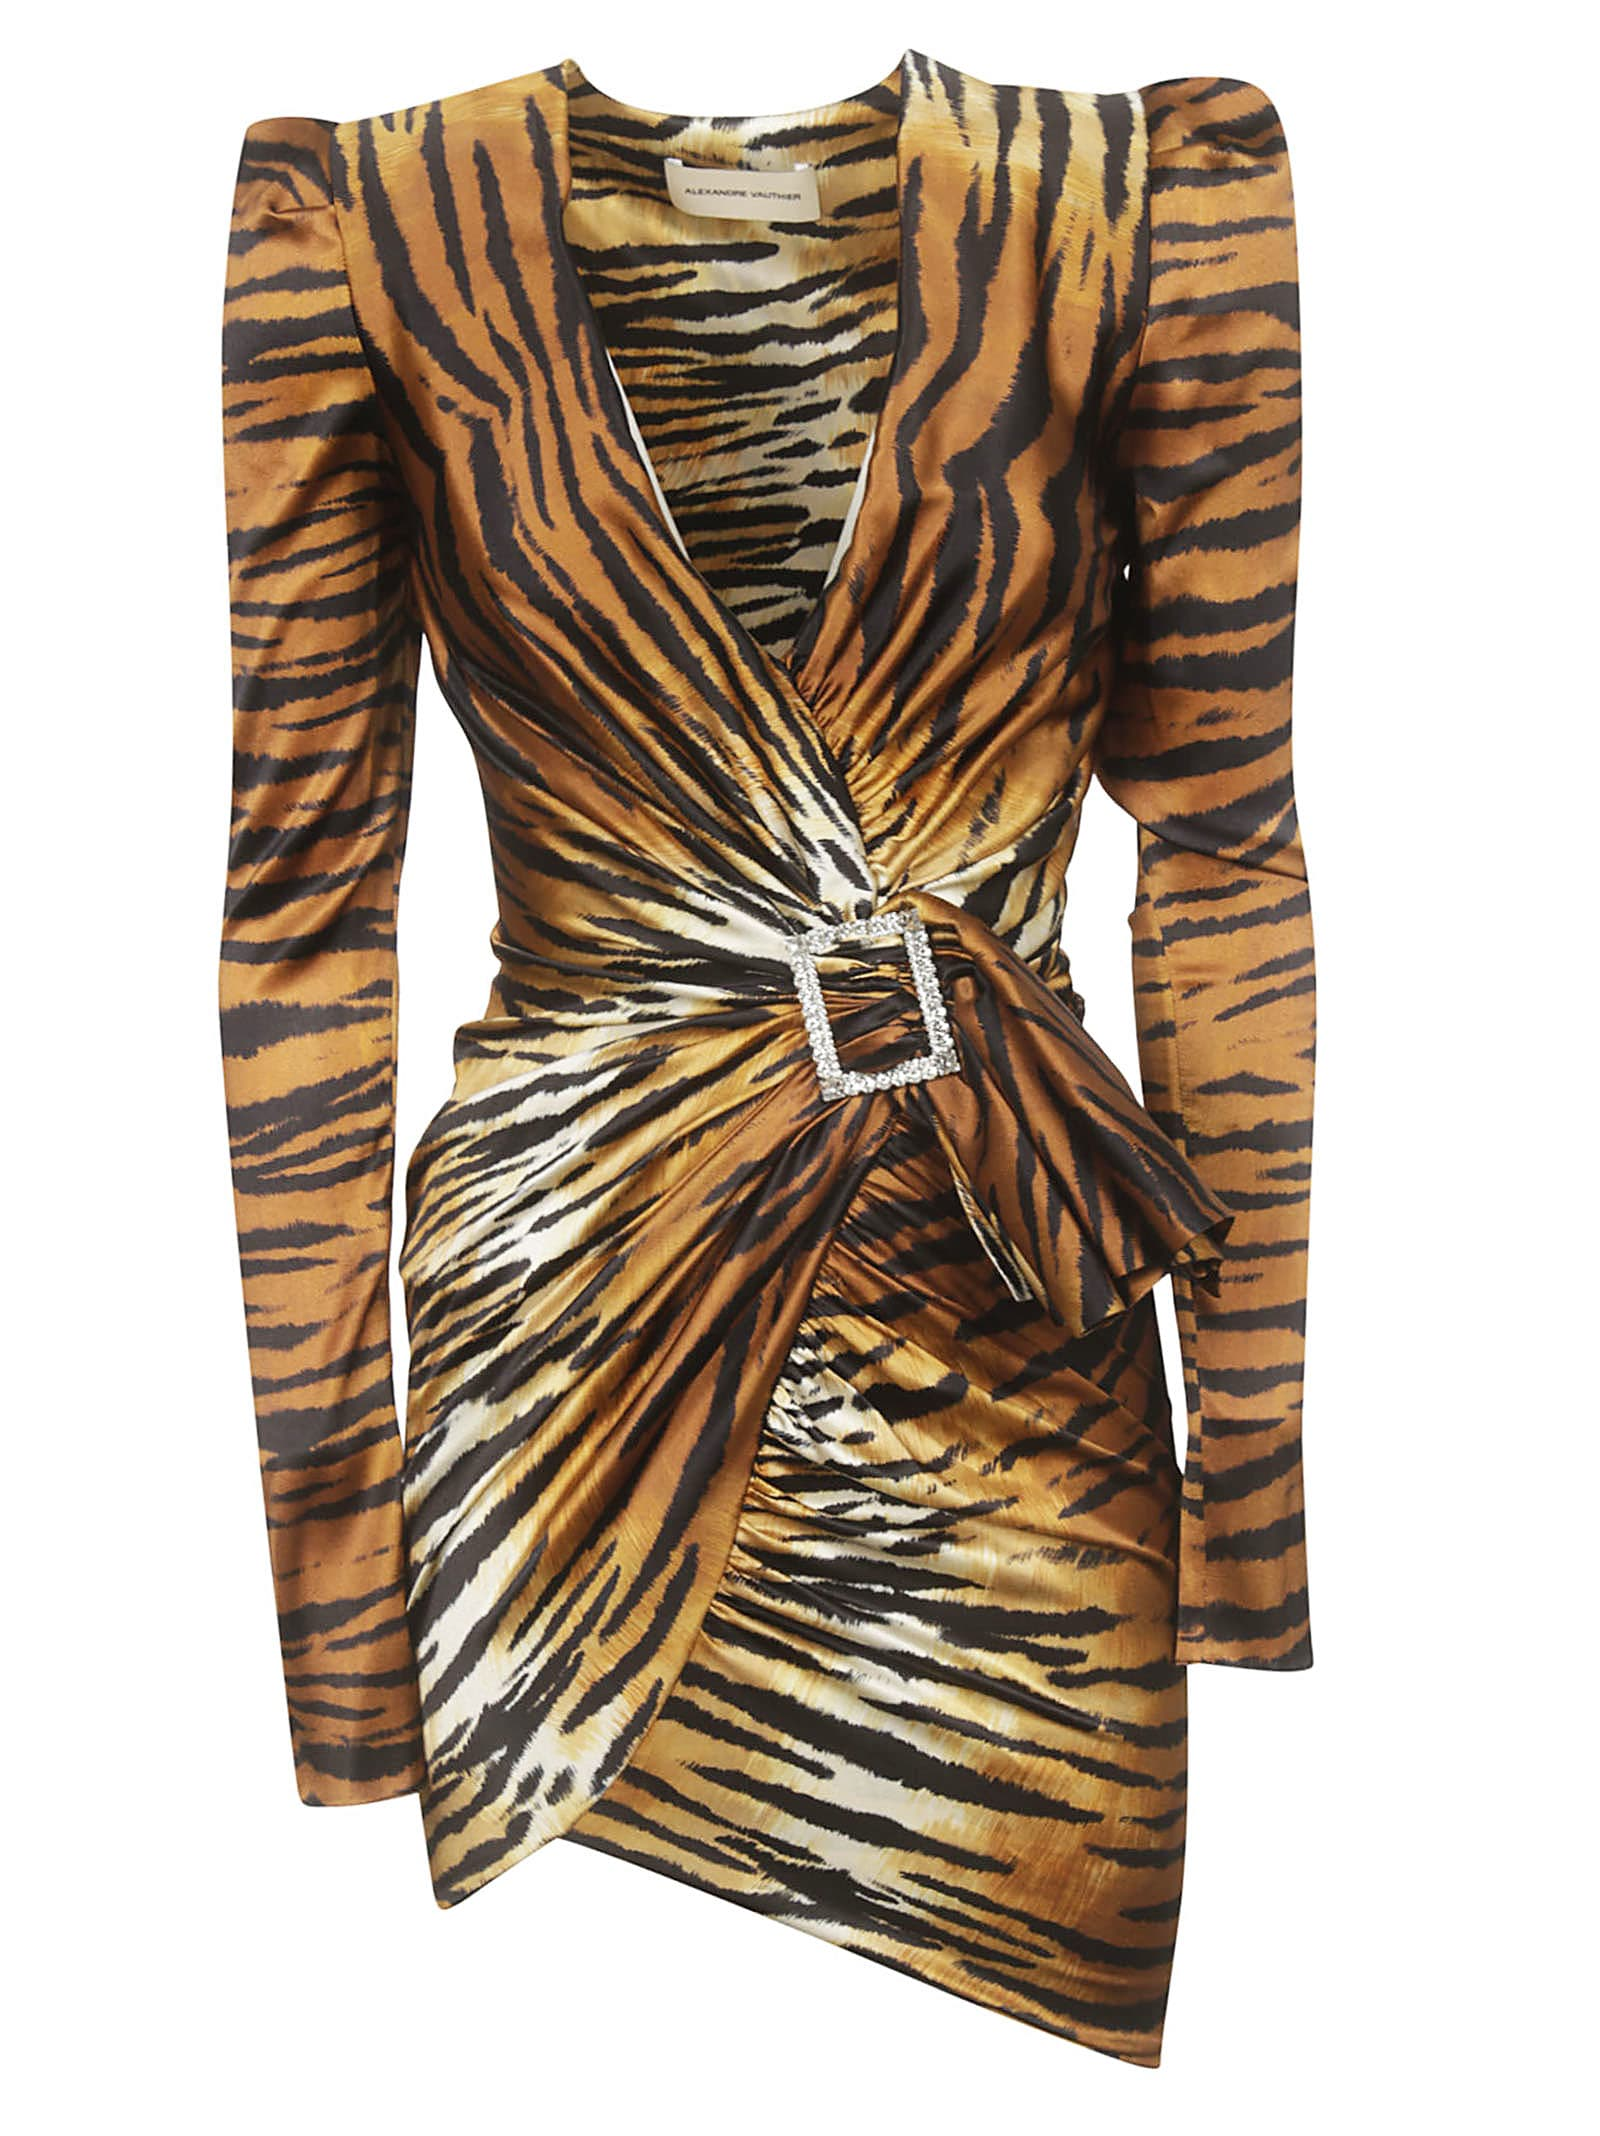 Alexandre Vauthier Tiger Print Dress